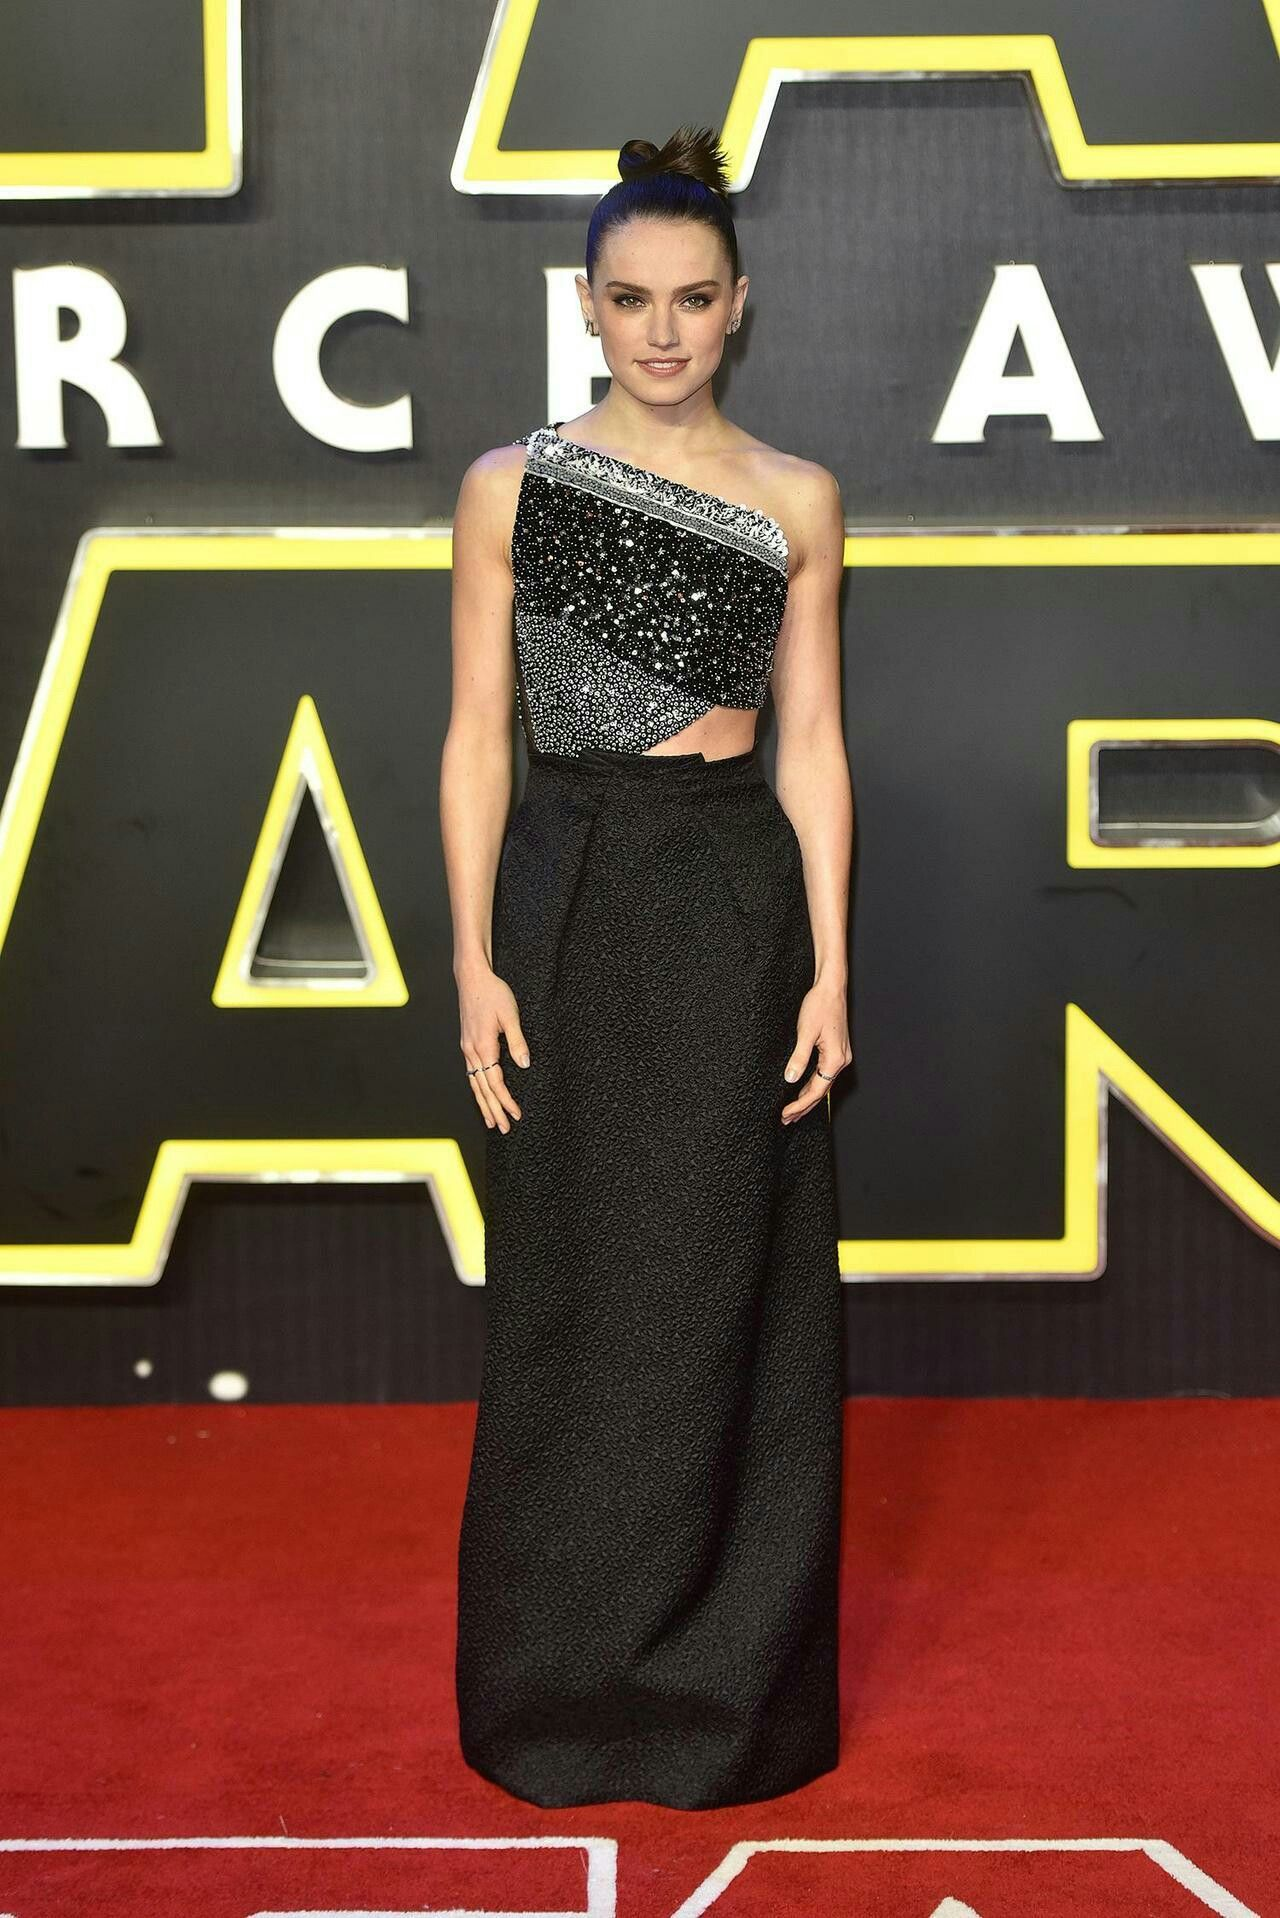 Daisy Ridley With Images Daisy Ridley Celebrity Style Daisy Ridley Star Wars